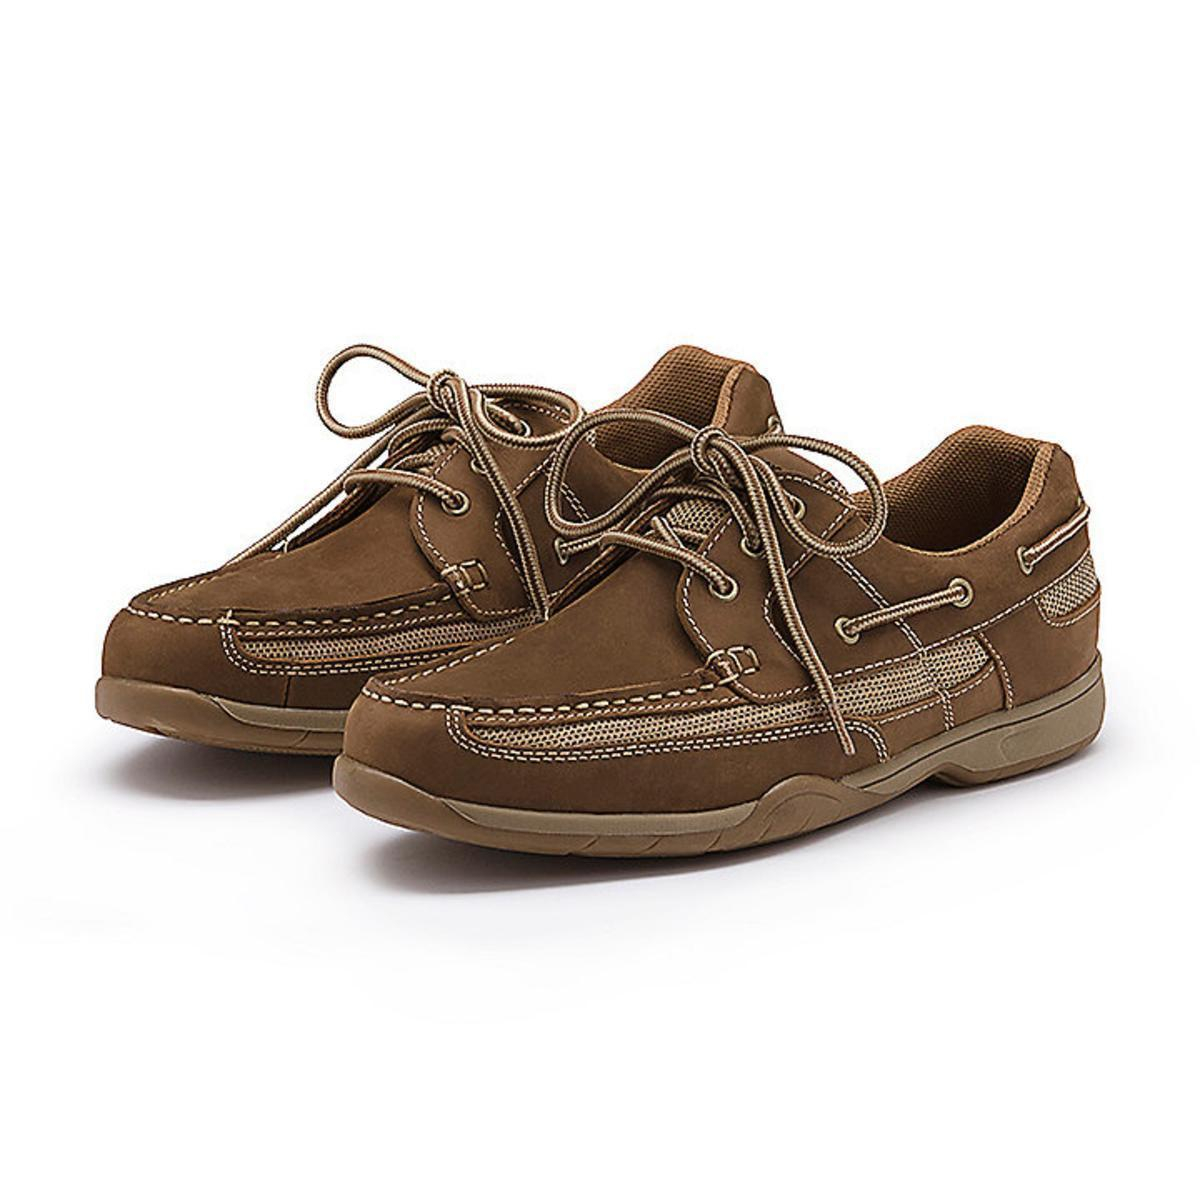 G H Bass Co Brown Leather Boat Shoes